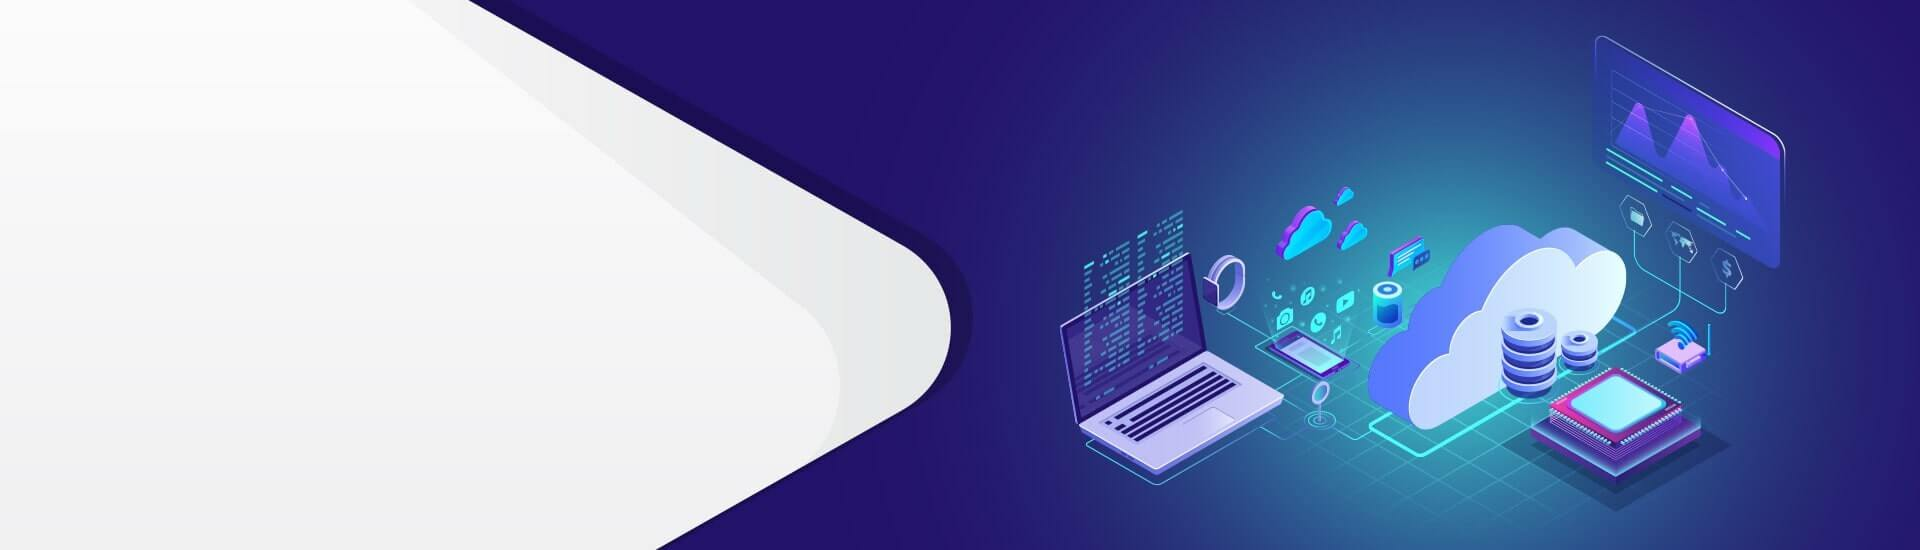 VOLANSYS-AWS-Cloud-banner